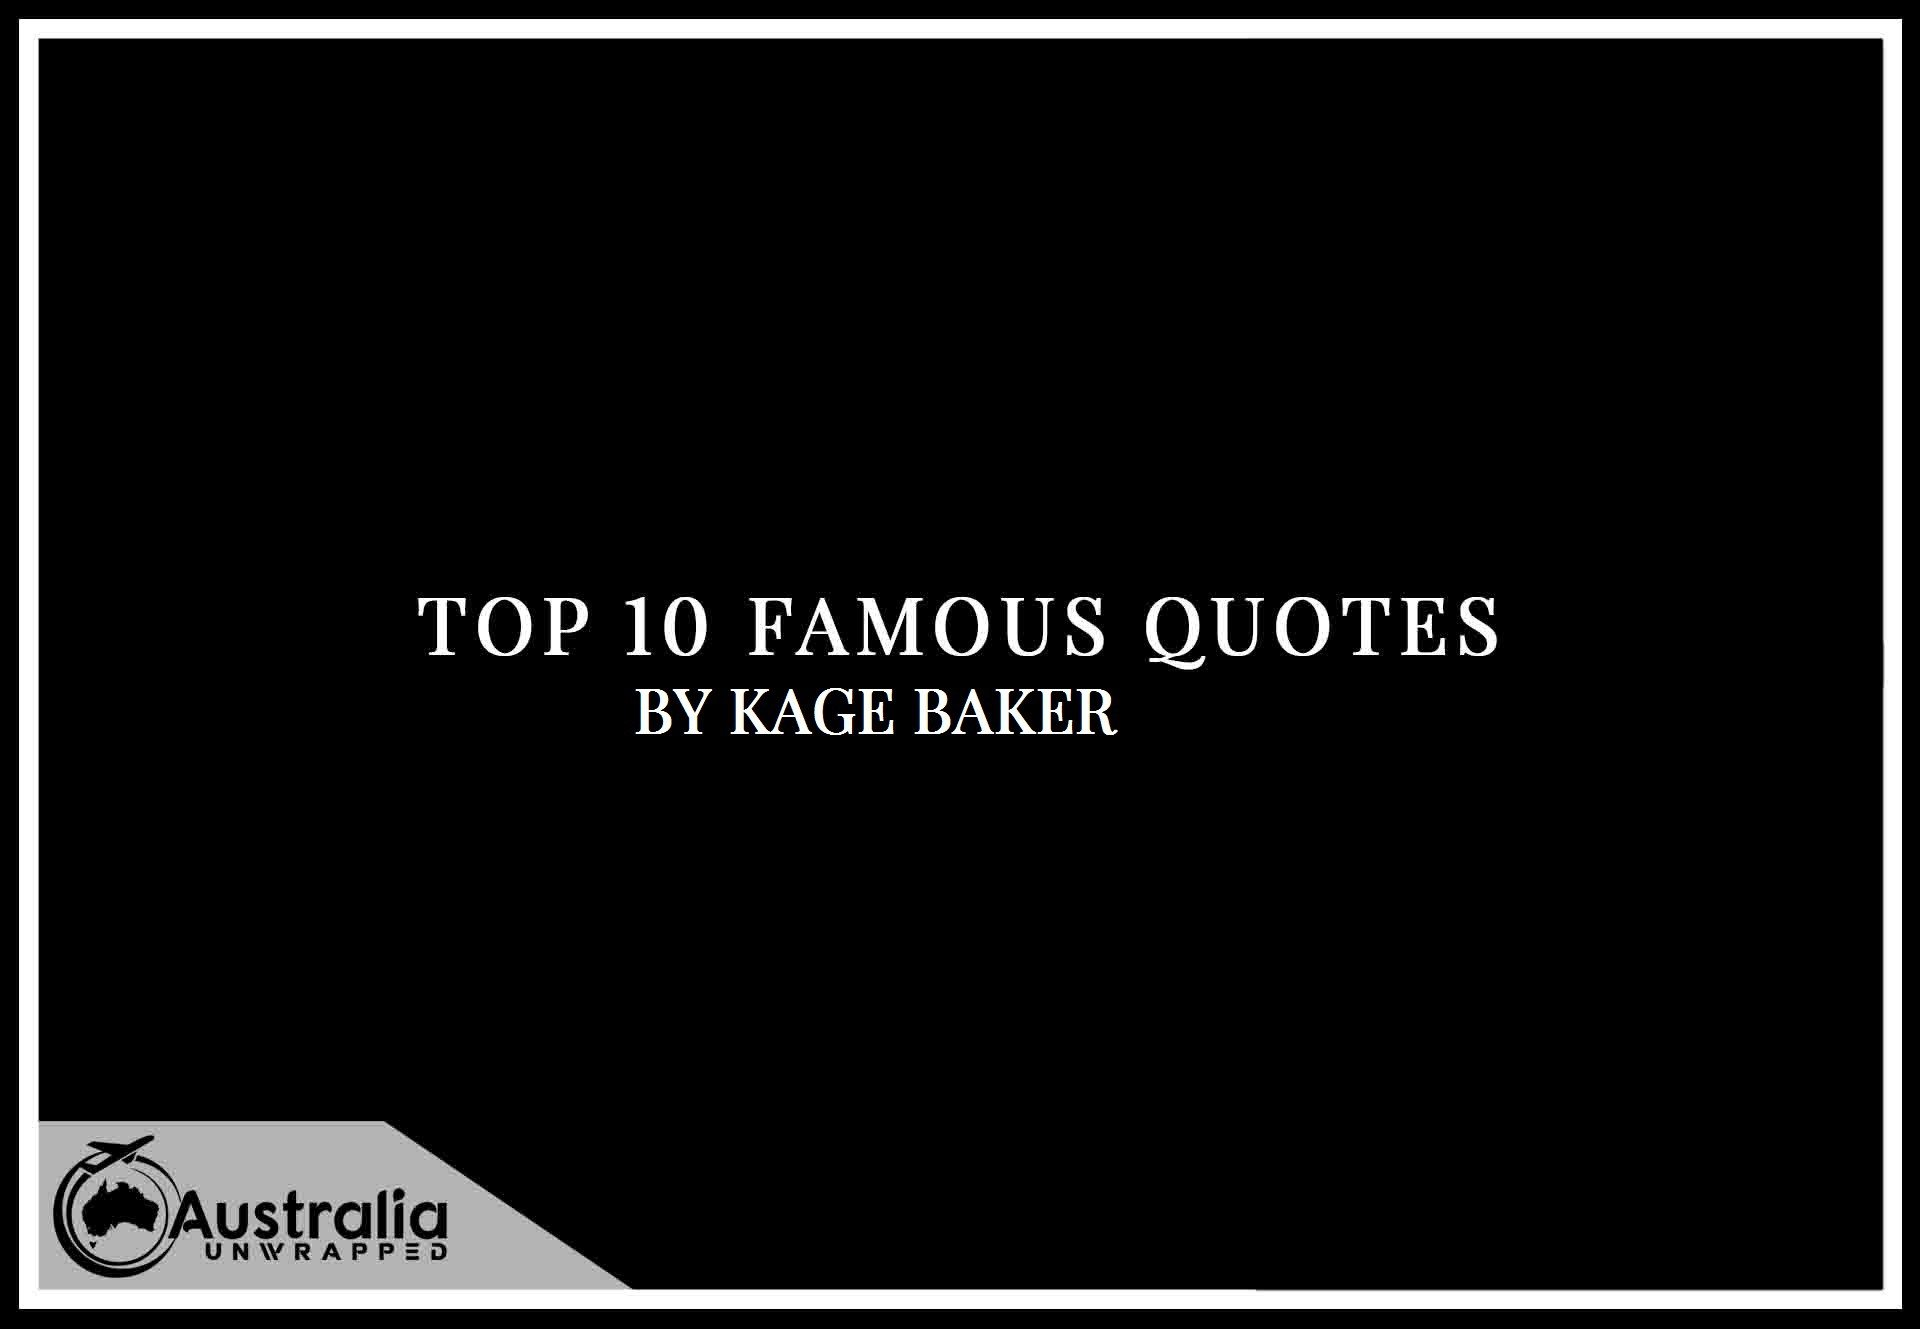 Kage Baker's Top 10 Popular and Famous Quotes